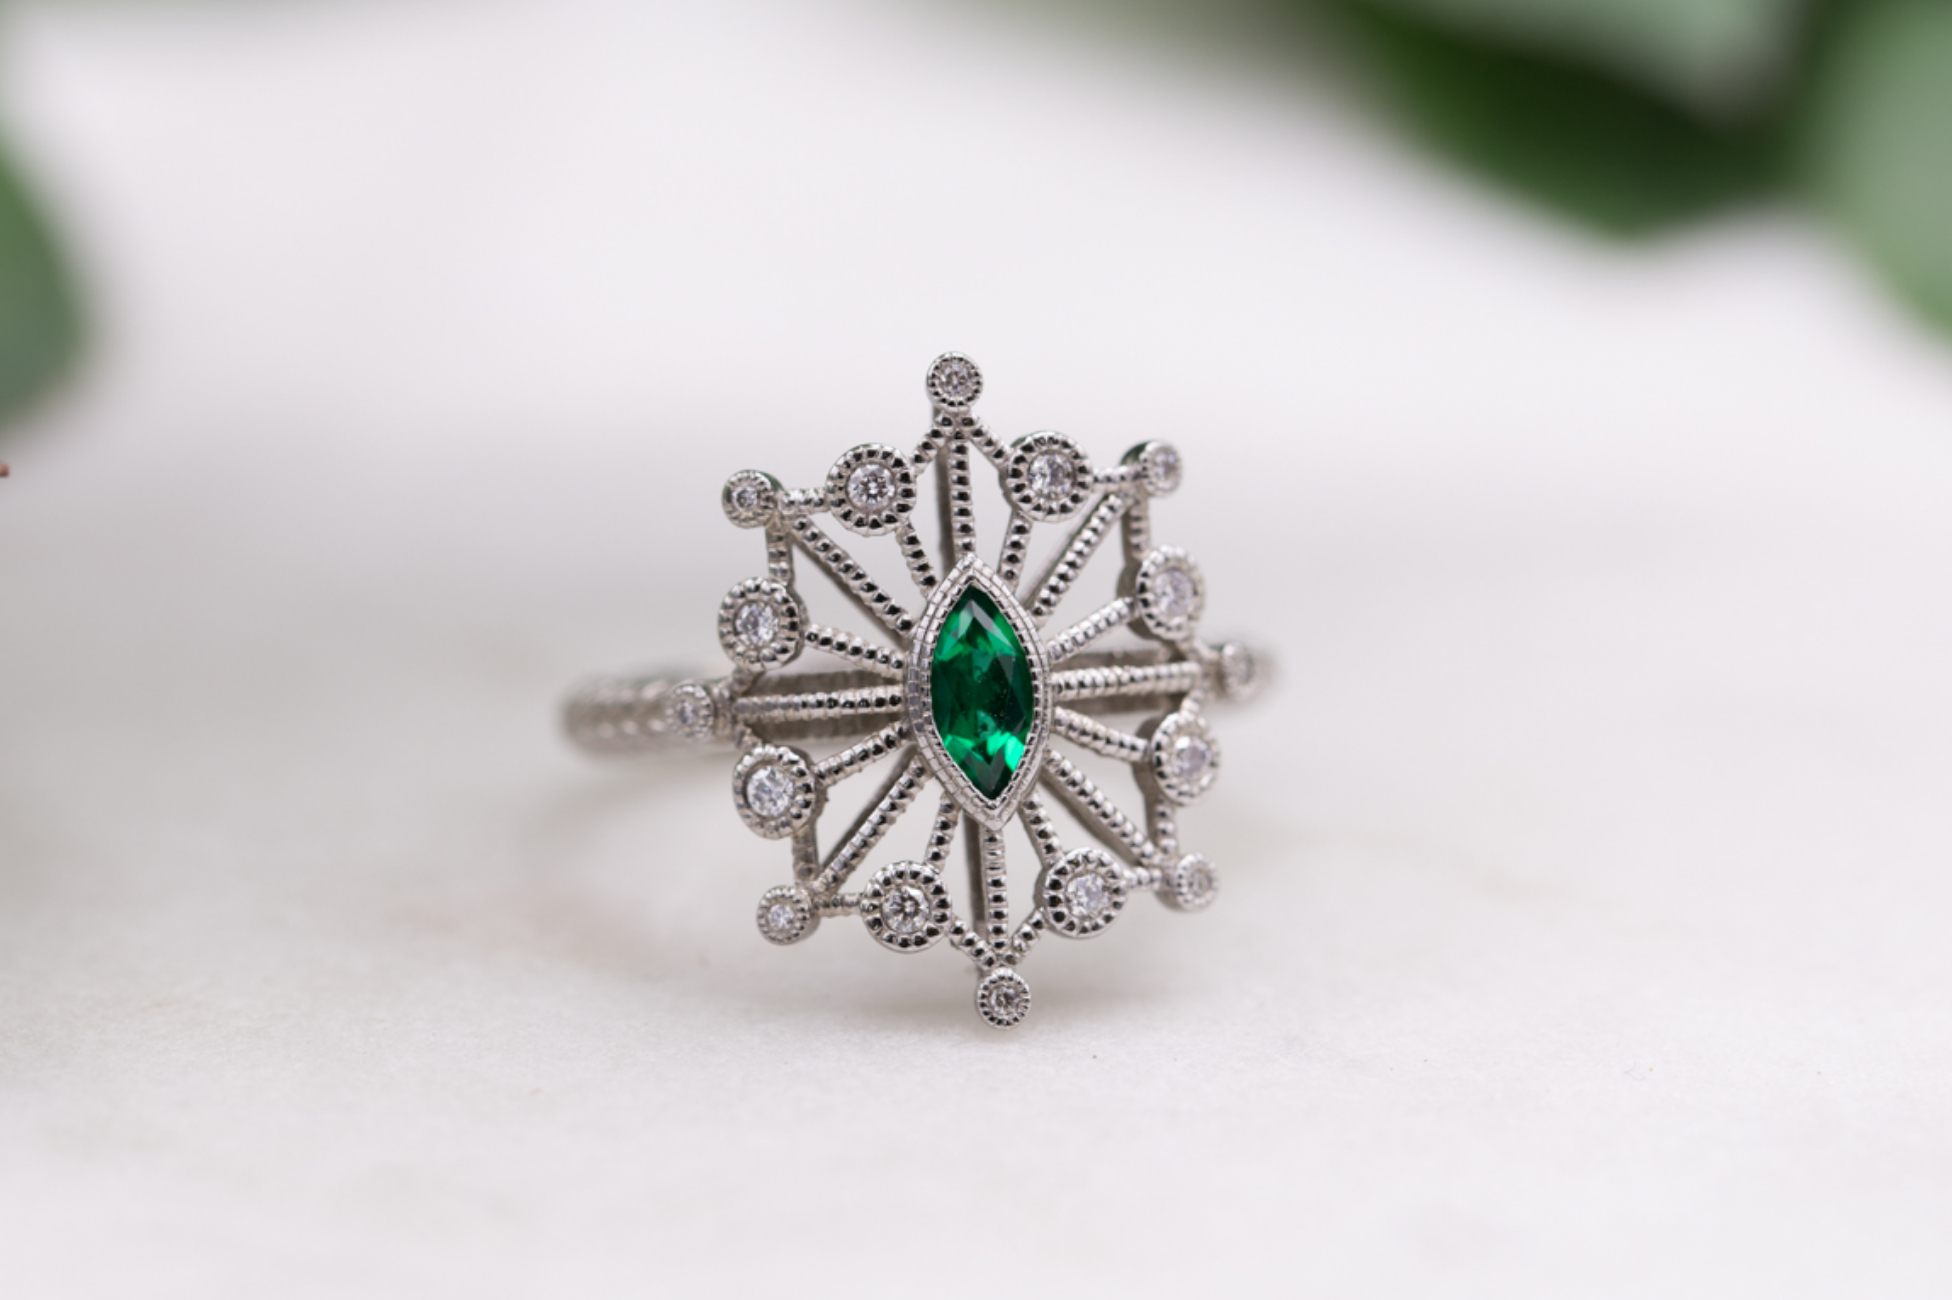 Vintage-inspired snowflake emerald ring